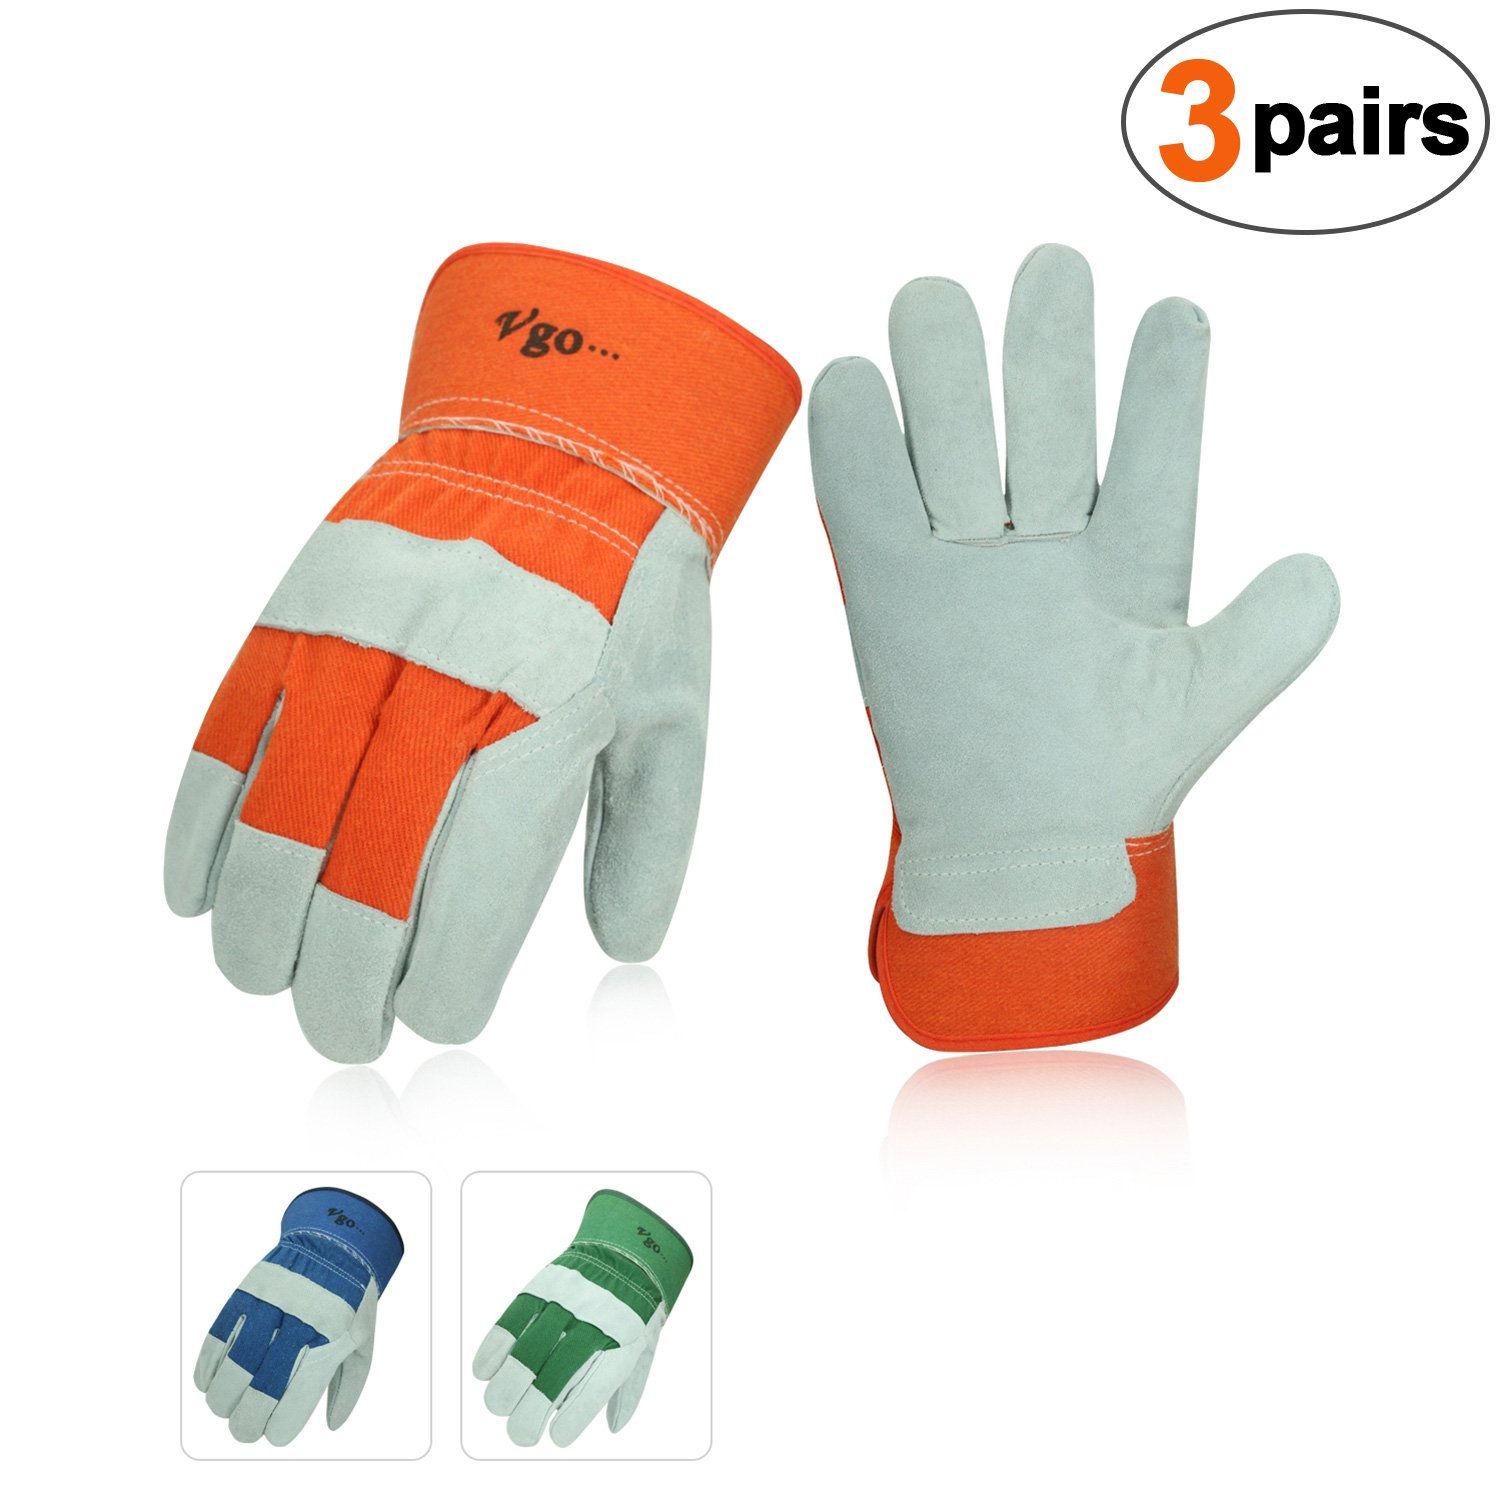 Vgo 3-Pairs Cow Split Leather Men's Work Gloves with Safety Cuff (Size L,Blue+Orange+Green,CB3501)